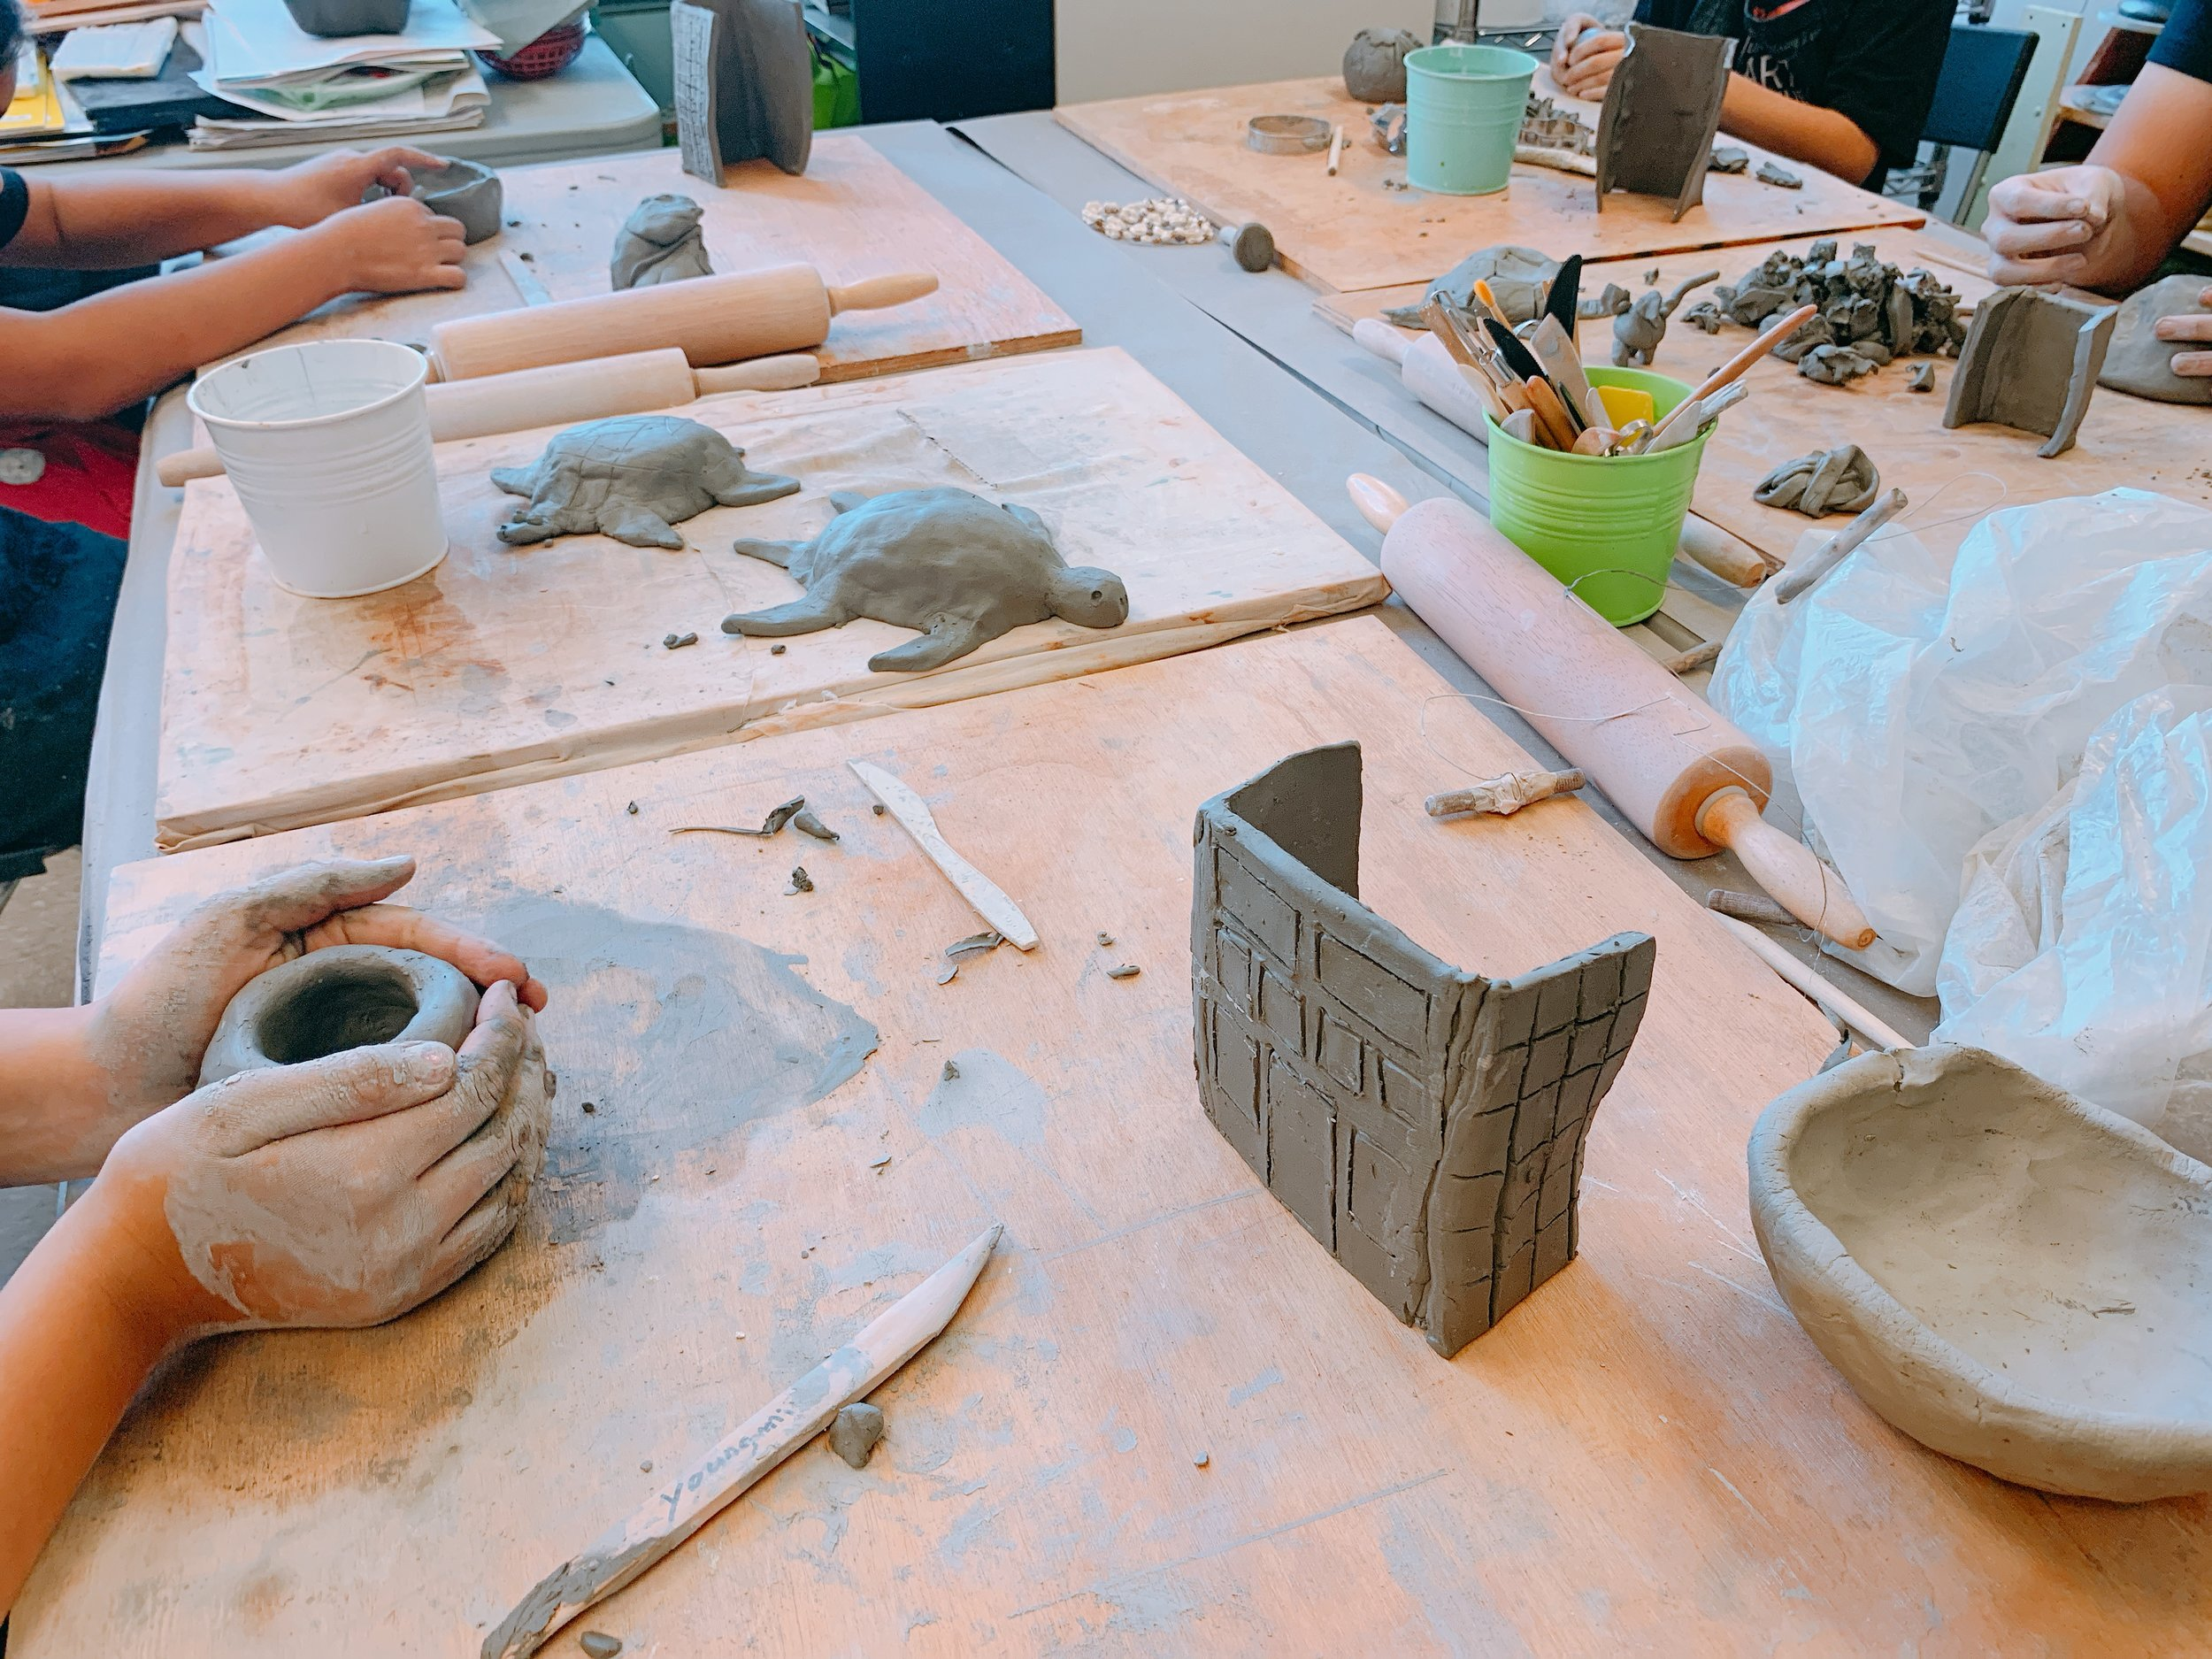 CERAMIC CLASS - Students will learn how to hand make ceramics by pinching, rolling, and shaping the clay.